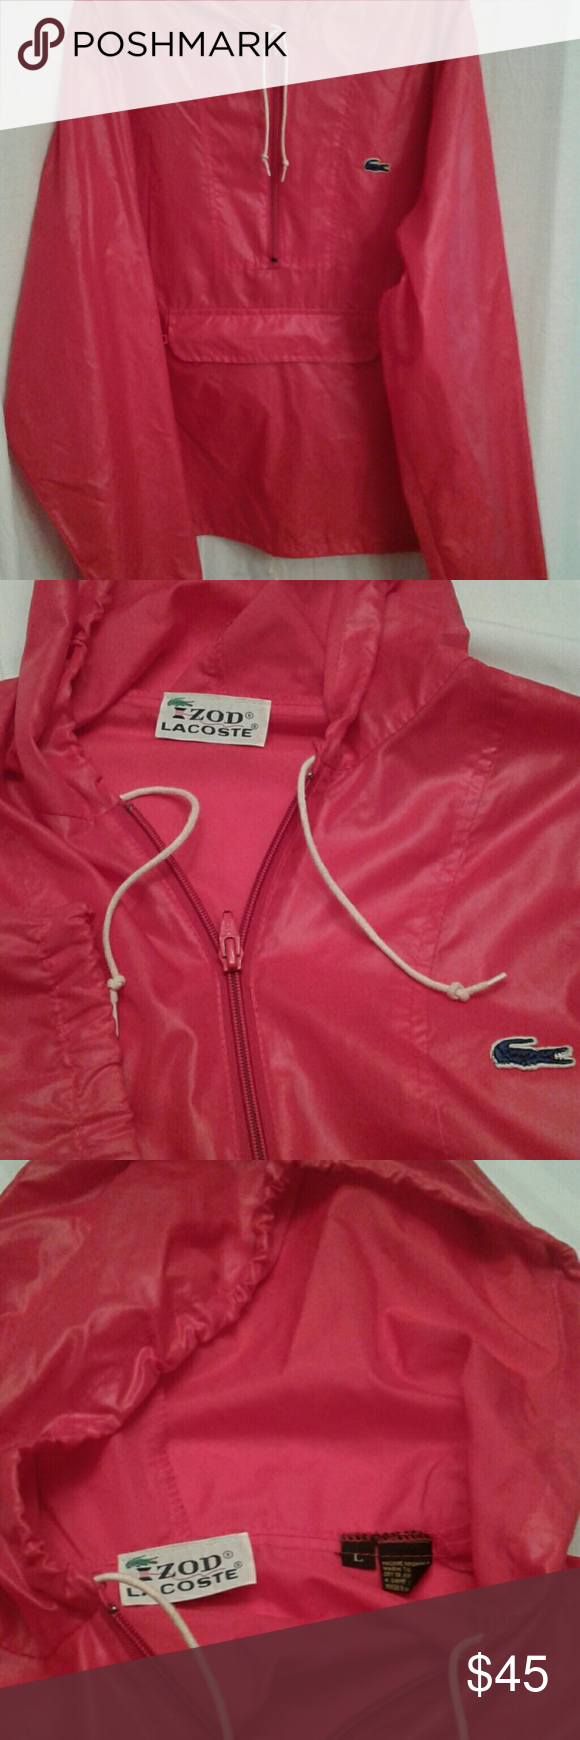 "Vintage Izod Lacoste men's windbreaker sz L. Men's  red pullover windbreaker with hood. This authentic vintage Izod Lacoste has drawstrings at the hood and hem. There is a 10"" zipper in front for easy on/off. There is a zippered front flap pocket at the waist for storage. The material is nylon and machine washable. Izod Lacoste Jackets & Coats Windbreakers"